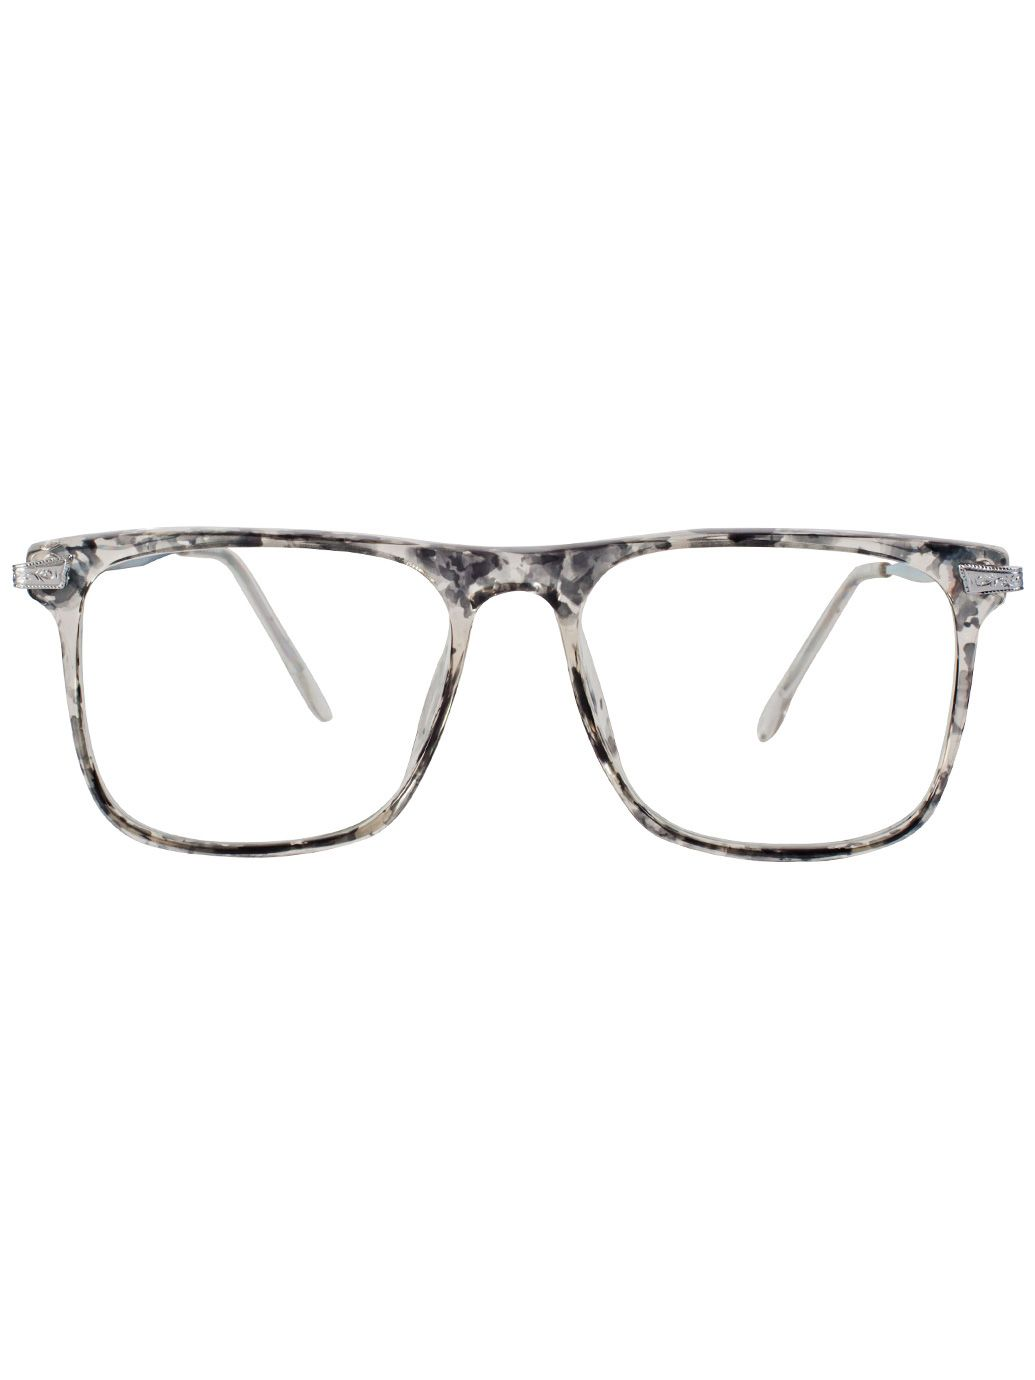 Fairmont Eyeglass | Limited Edition